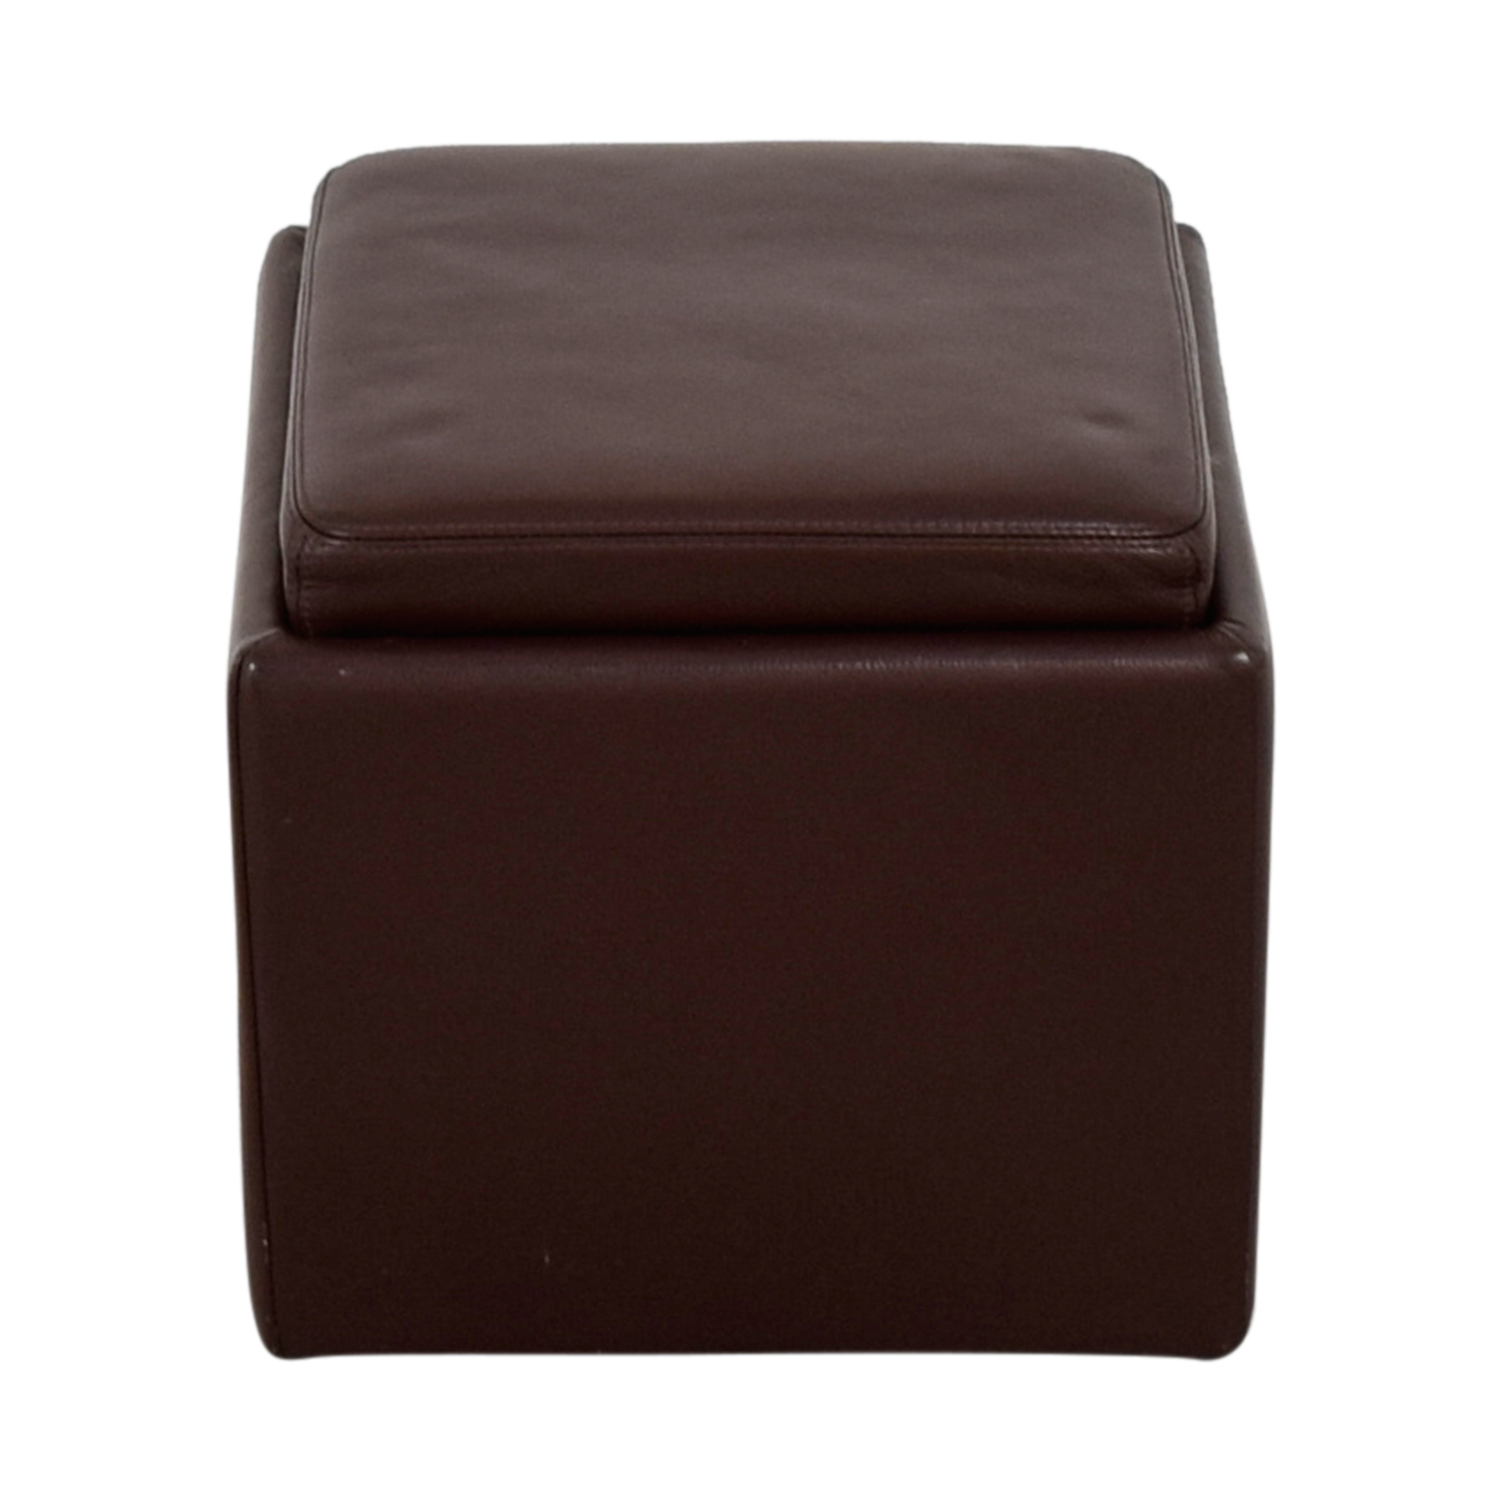 Room & Board Room & Board Brown Leather Ottoman on sale